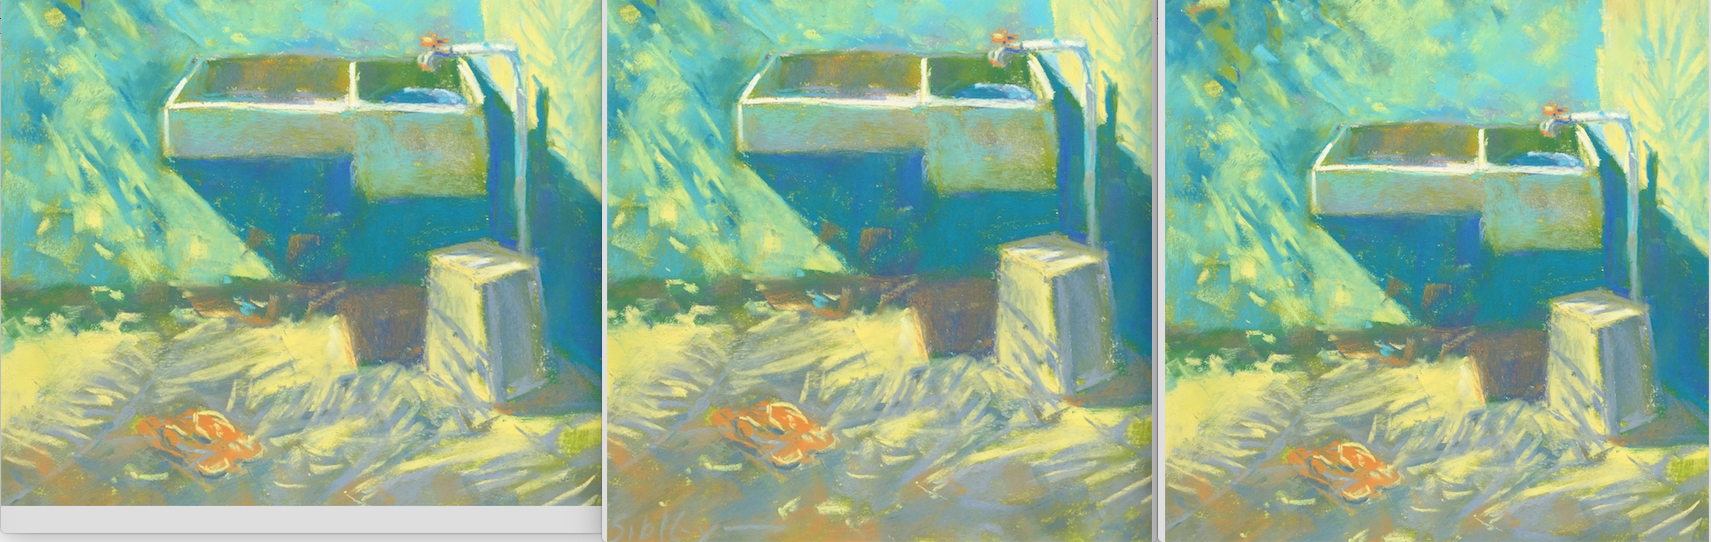 Cropping And How It can Strengthen Your Painting - HowToPastel